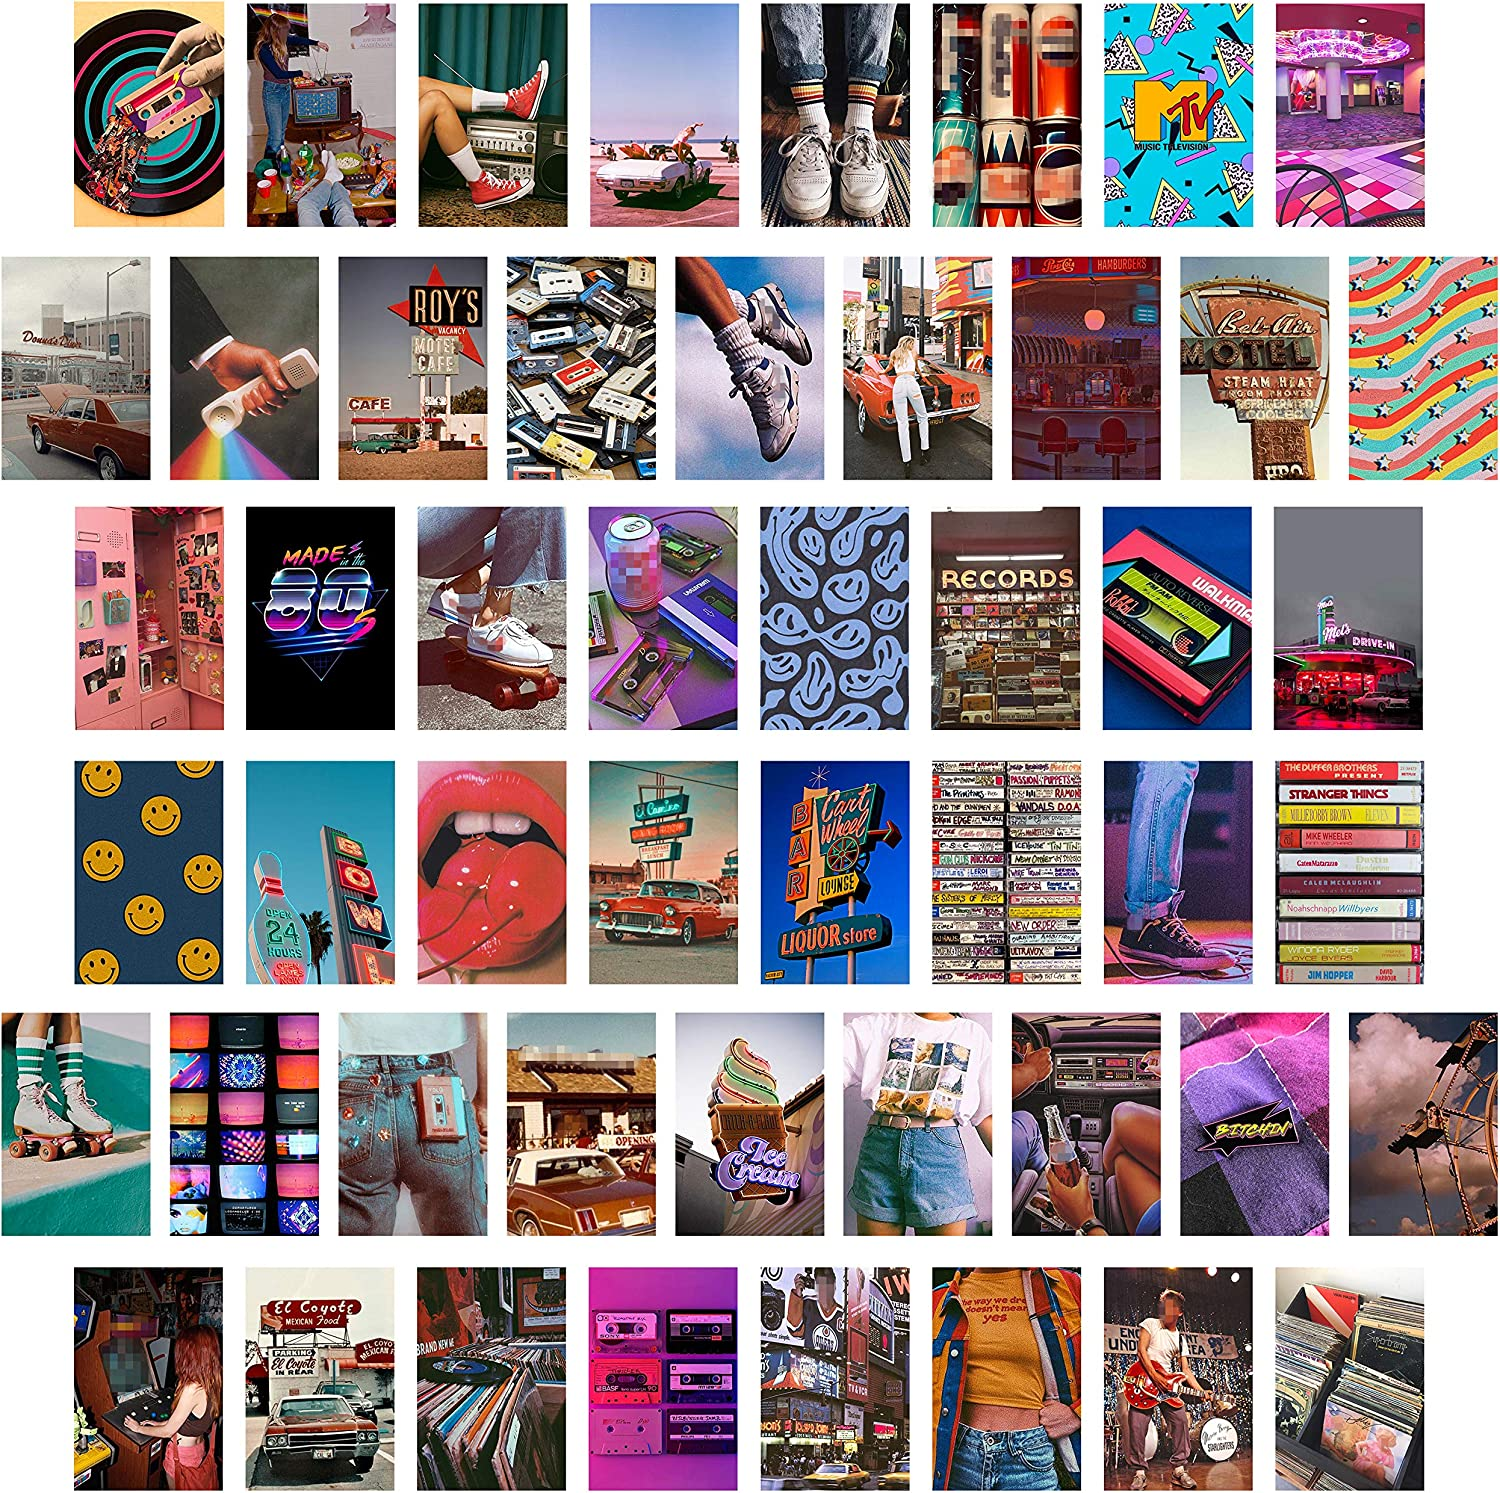 CY2SIDE 50PCS Retro 80s Aesthetic Picture for Wall Collage, 50 Set 4x6 inch, Colorful Collage Kit, Retro Room Decor for Girls, Wall Art Prints for Room, Dorm Photo Display, VSCO Posters for Bedroom